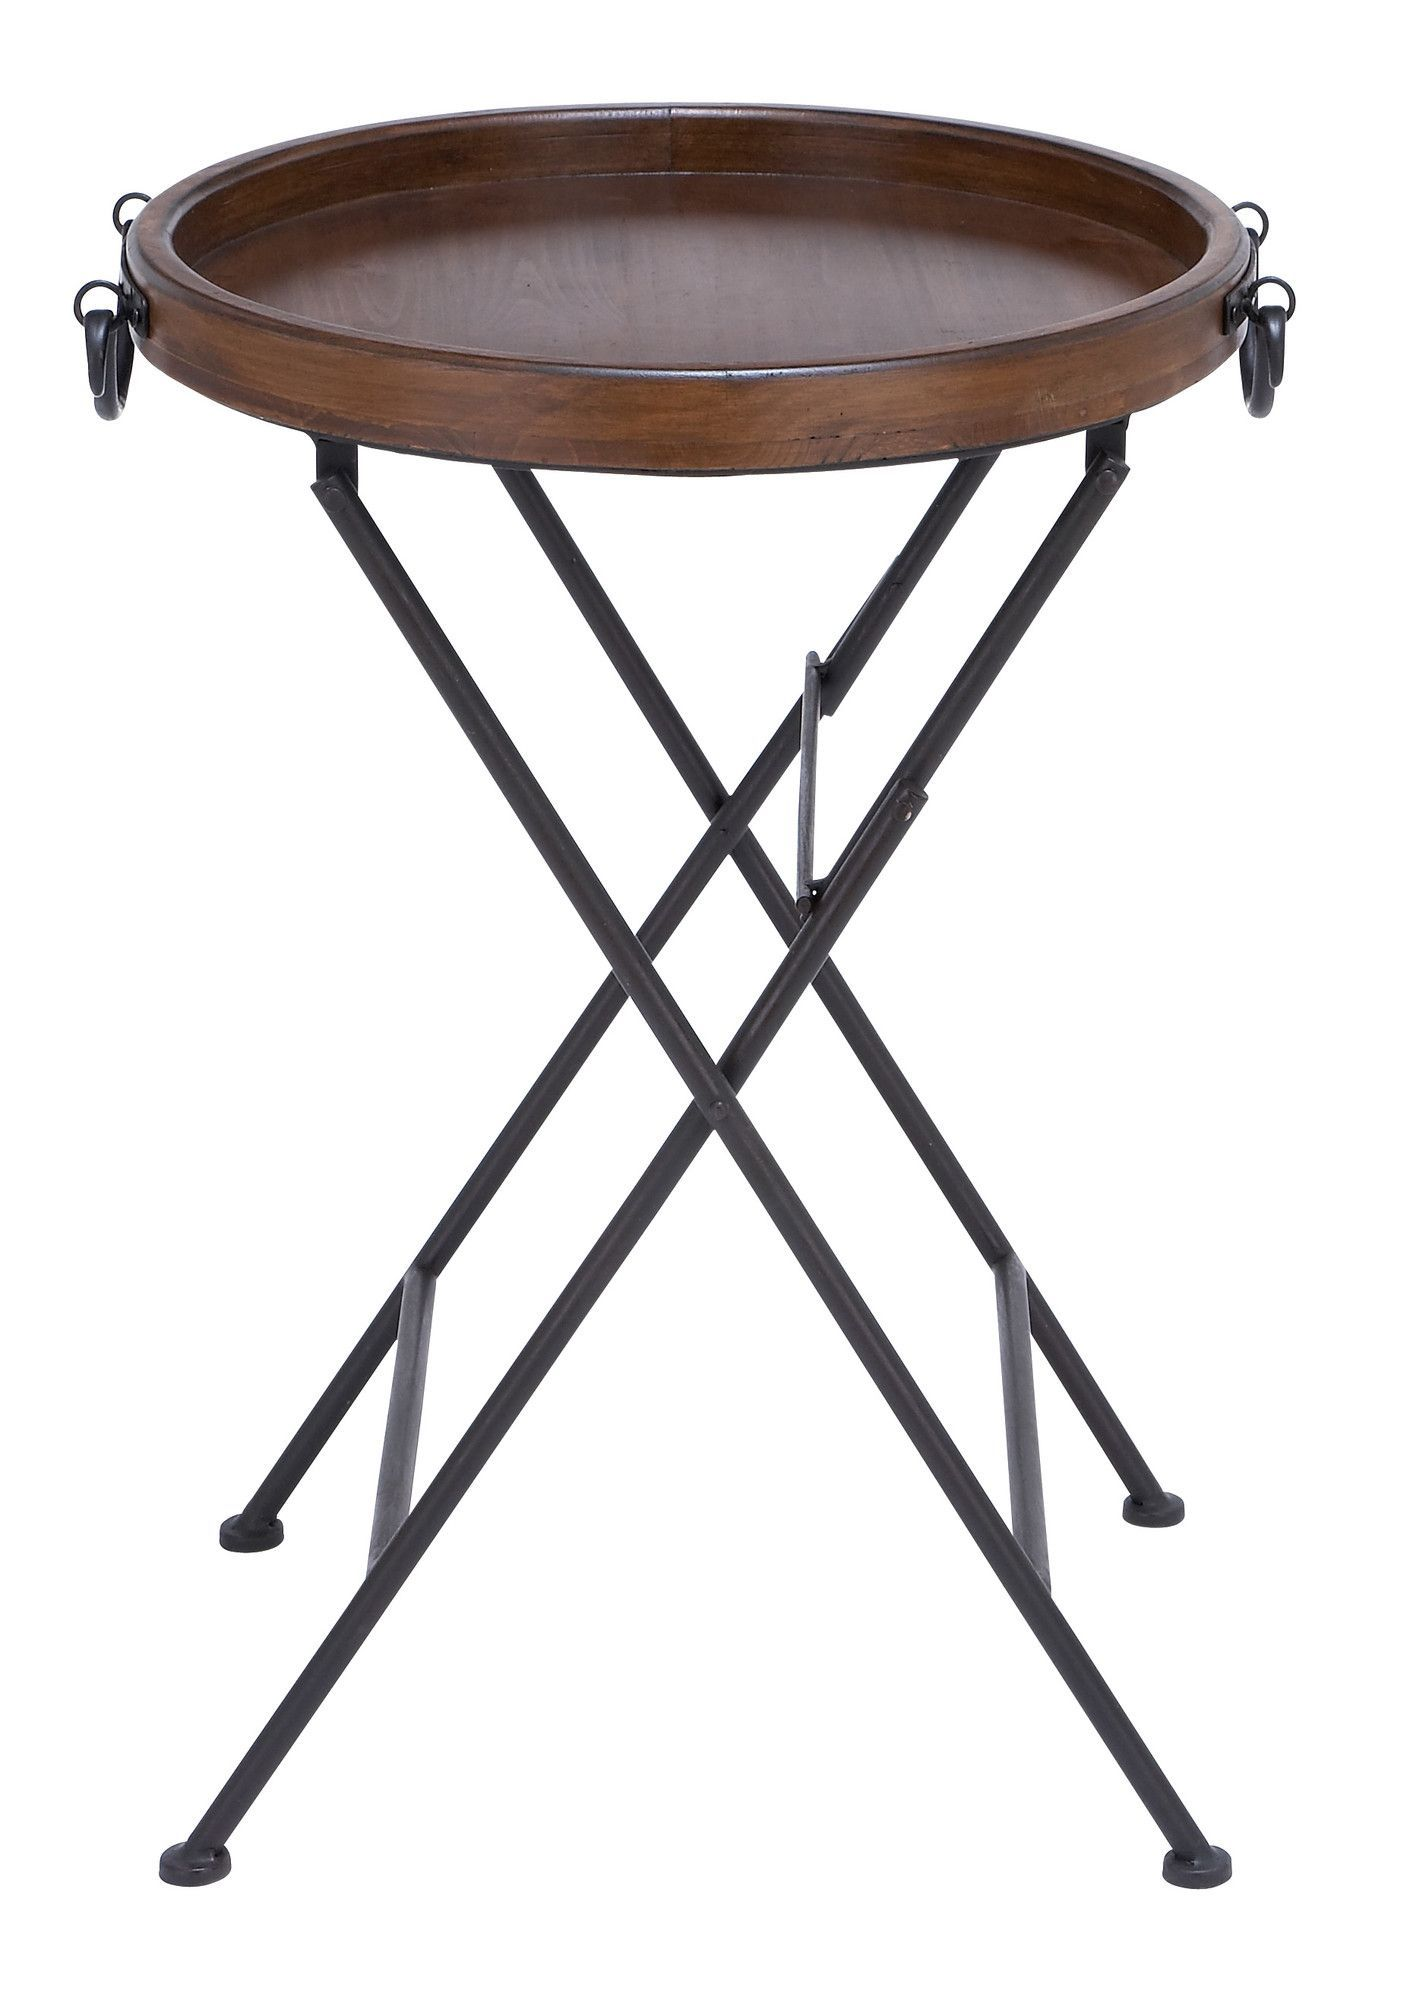 Wood Tray Topped Table With An X Shaped Metal Frame. Product: Tray  TableConstruction Material: Wood And MetalColor: Brown And Black Features:  X Shaped Base ...